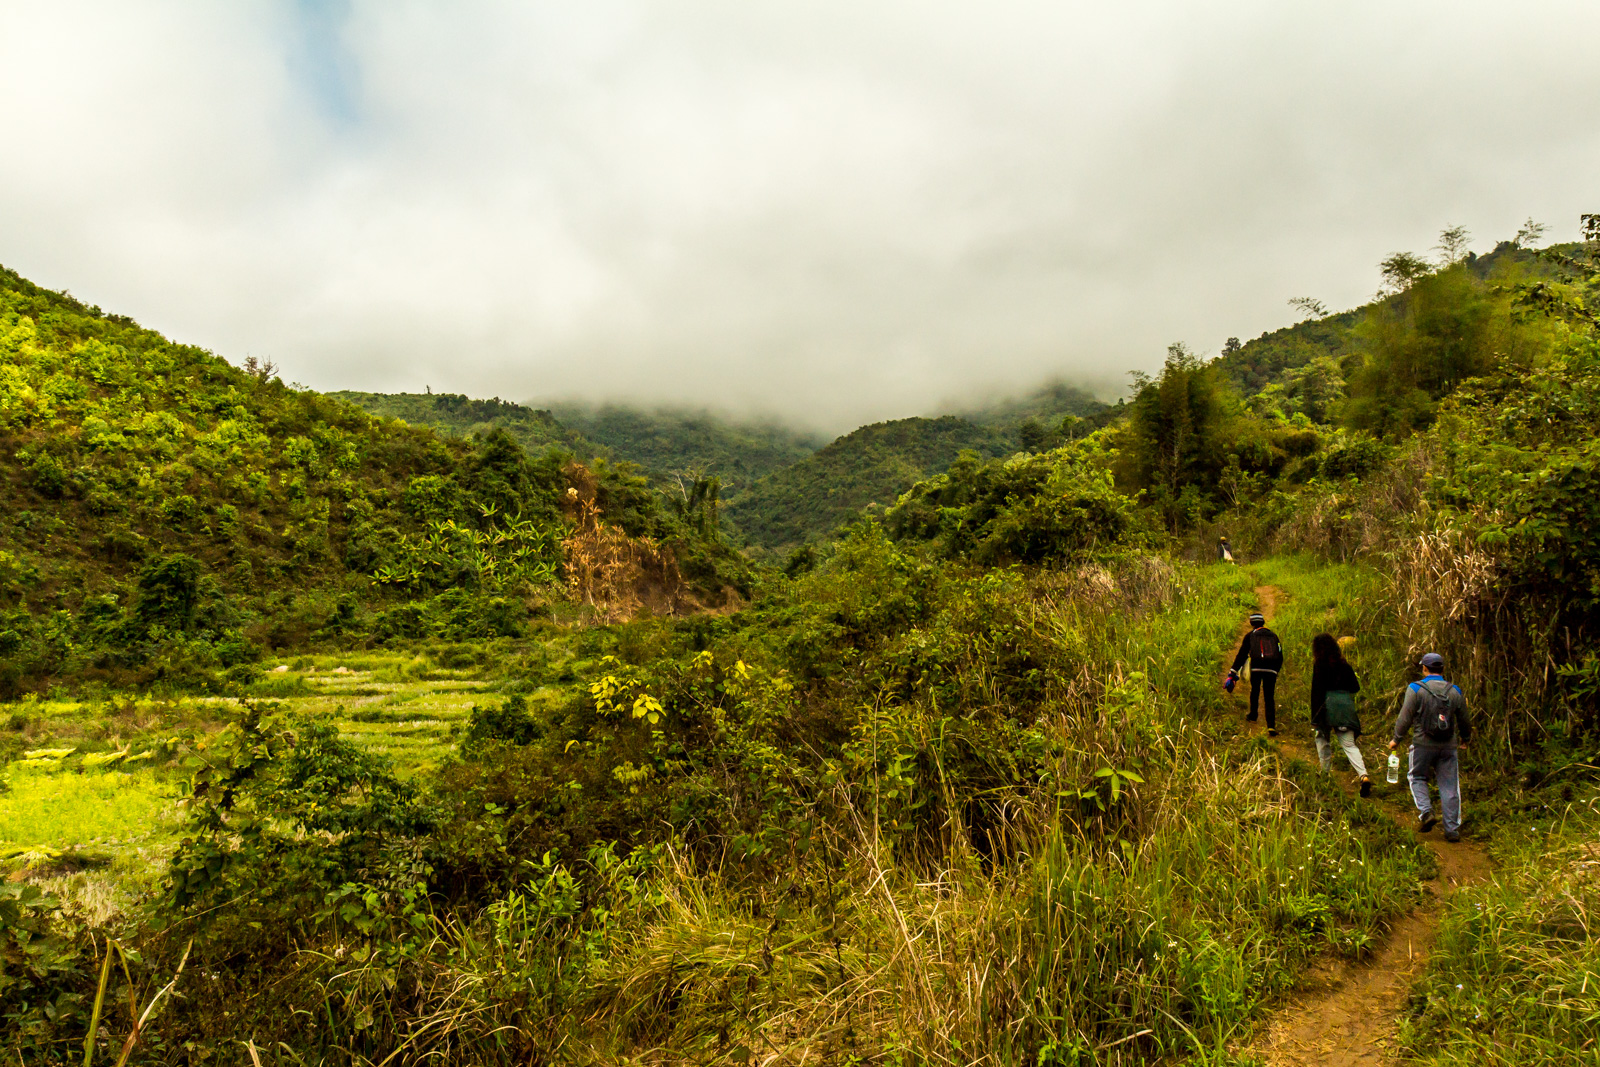 We walked through a peaceful valley.